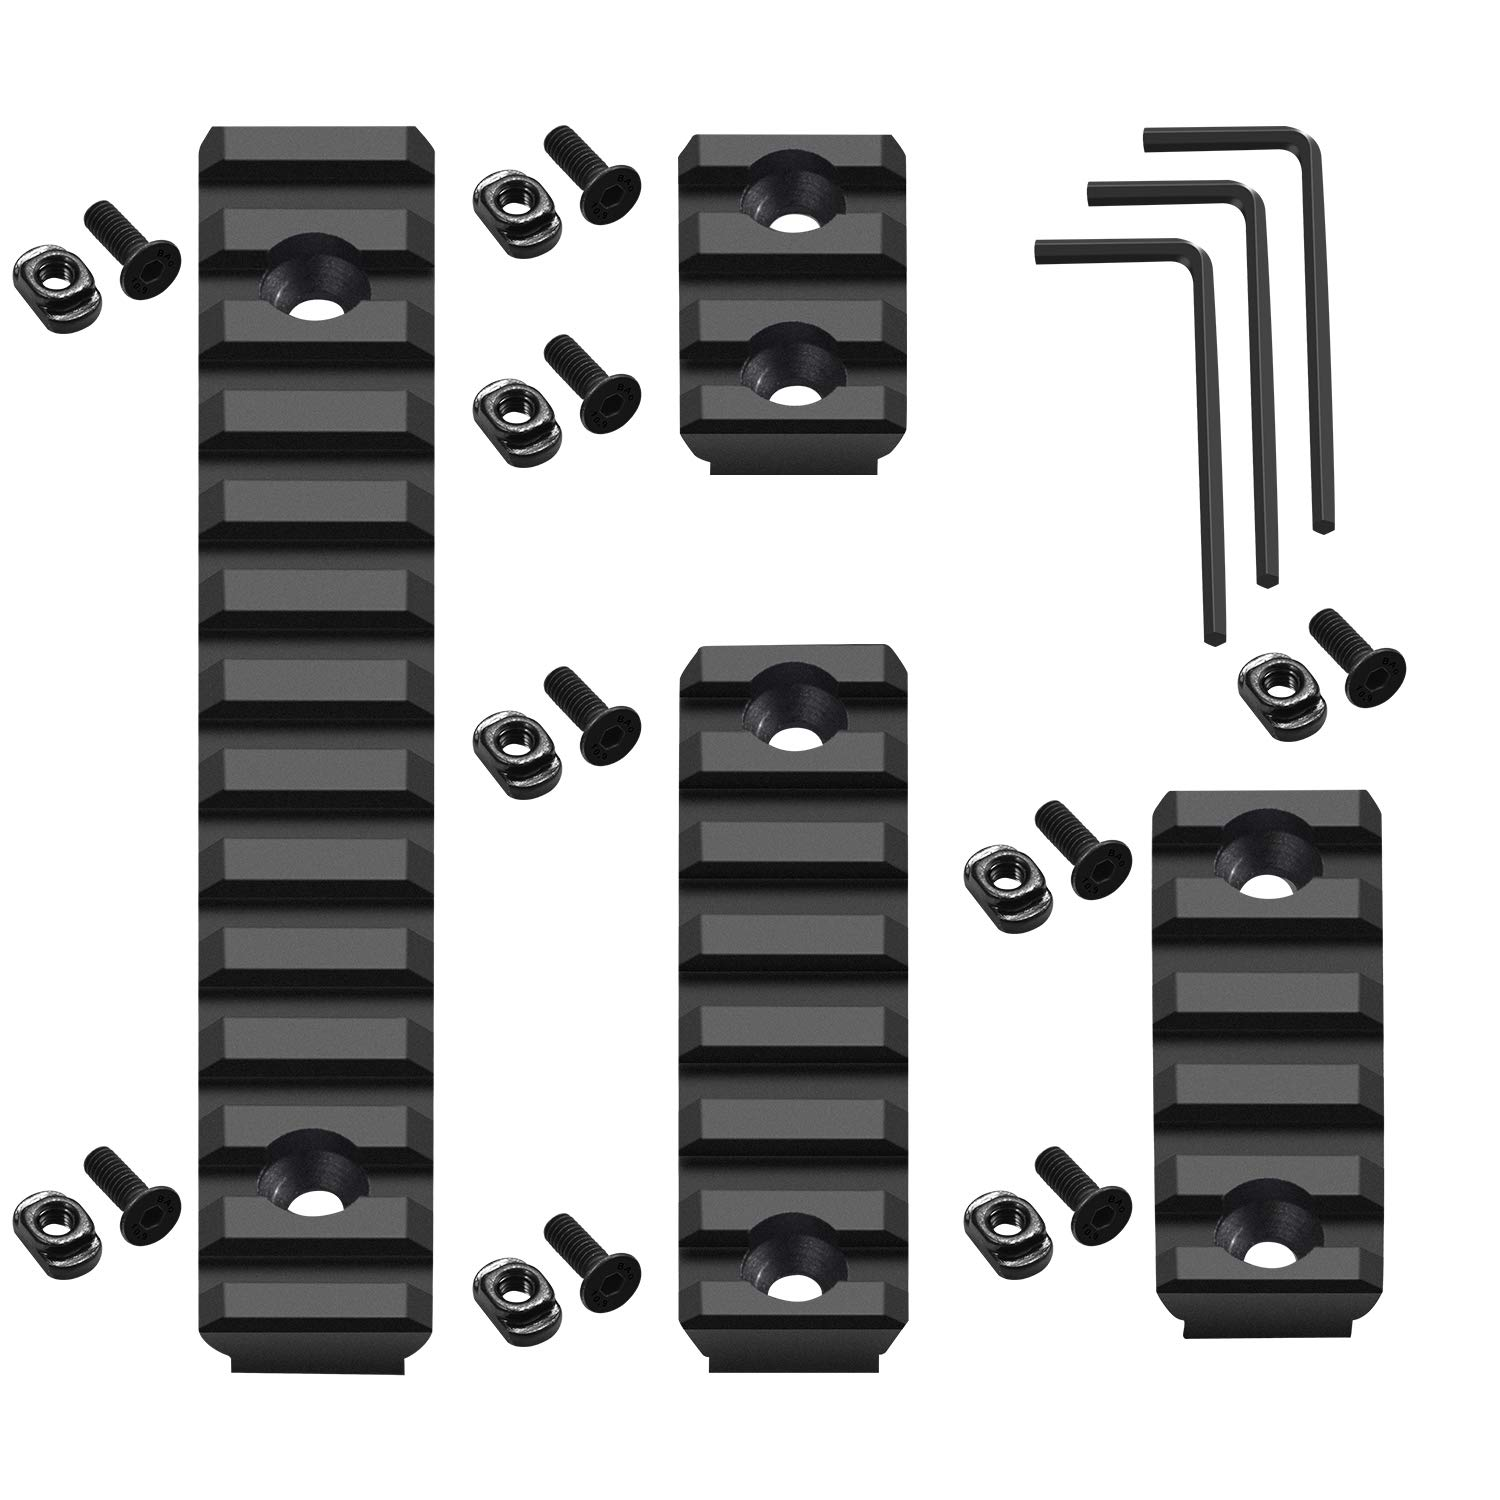 Compatible with Mlok Picatinny Rail 3 5 7 13 Slots Aluminum Picatinny Rails Section Adapter for M LOK Systems with 9 T-Nuts 9 Screws 3 Allen Wrench - 4 Pack